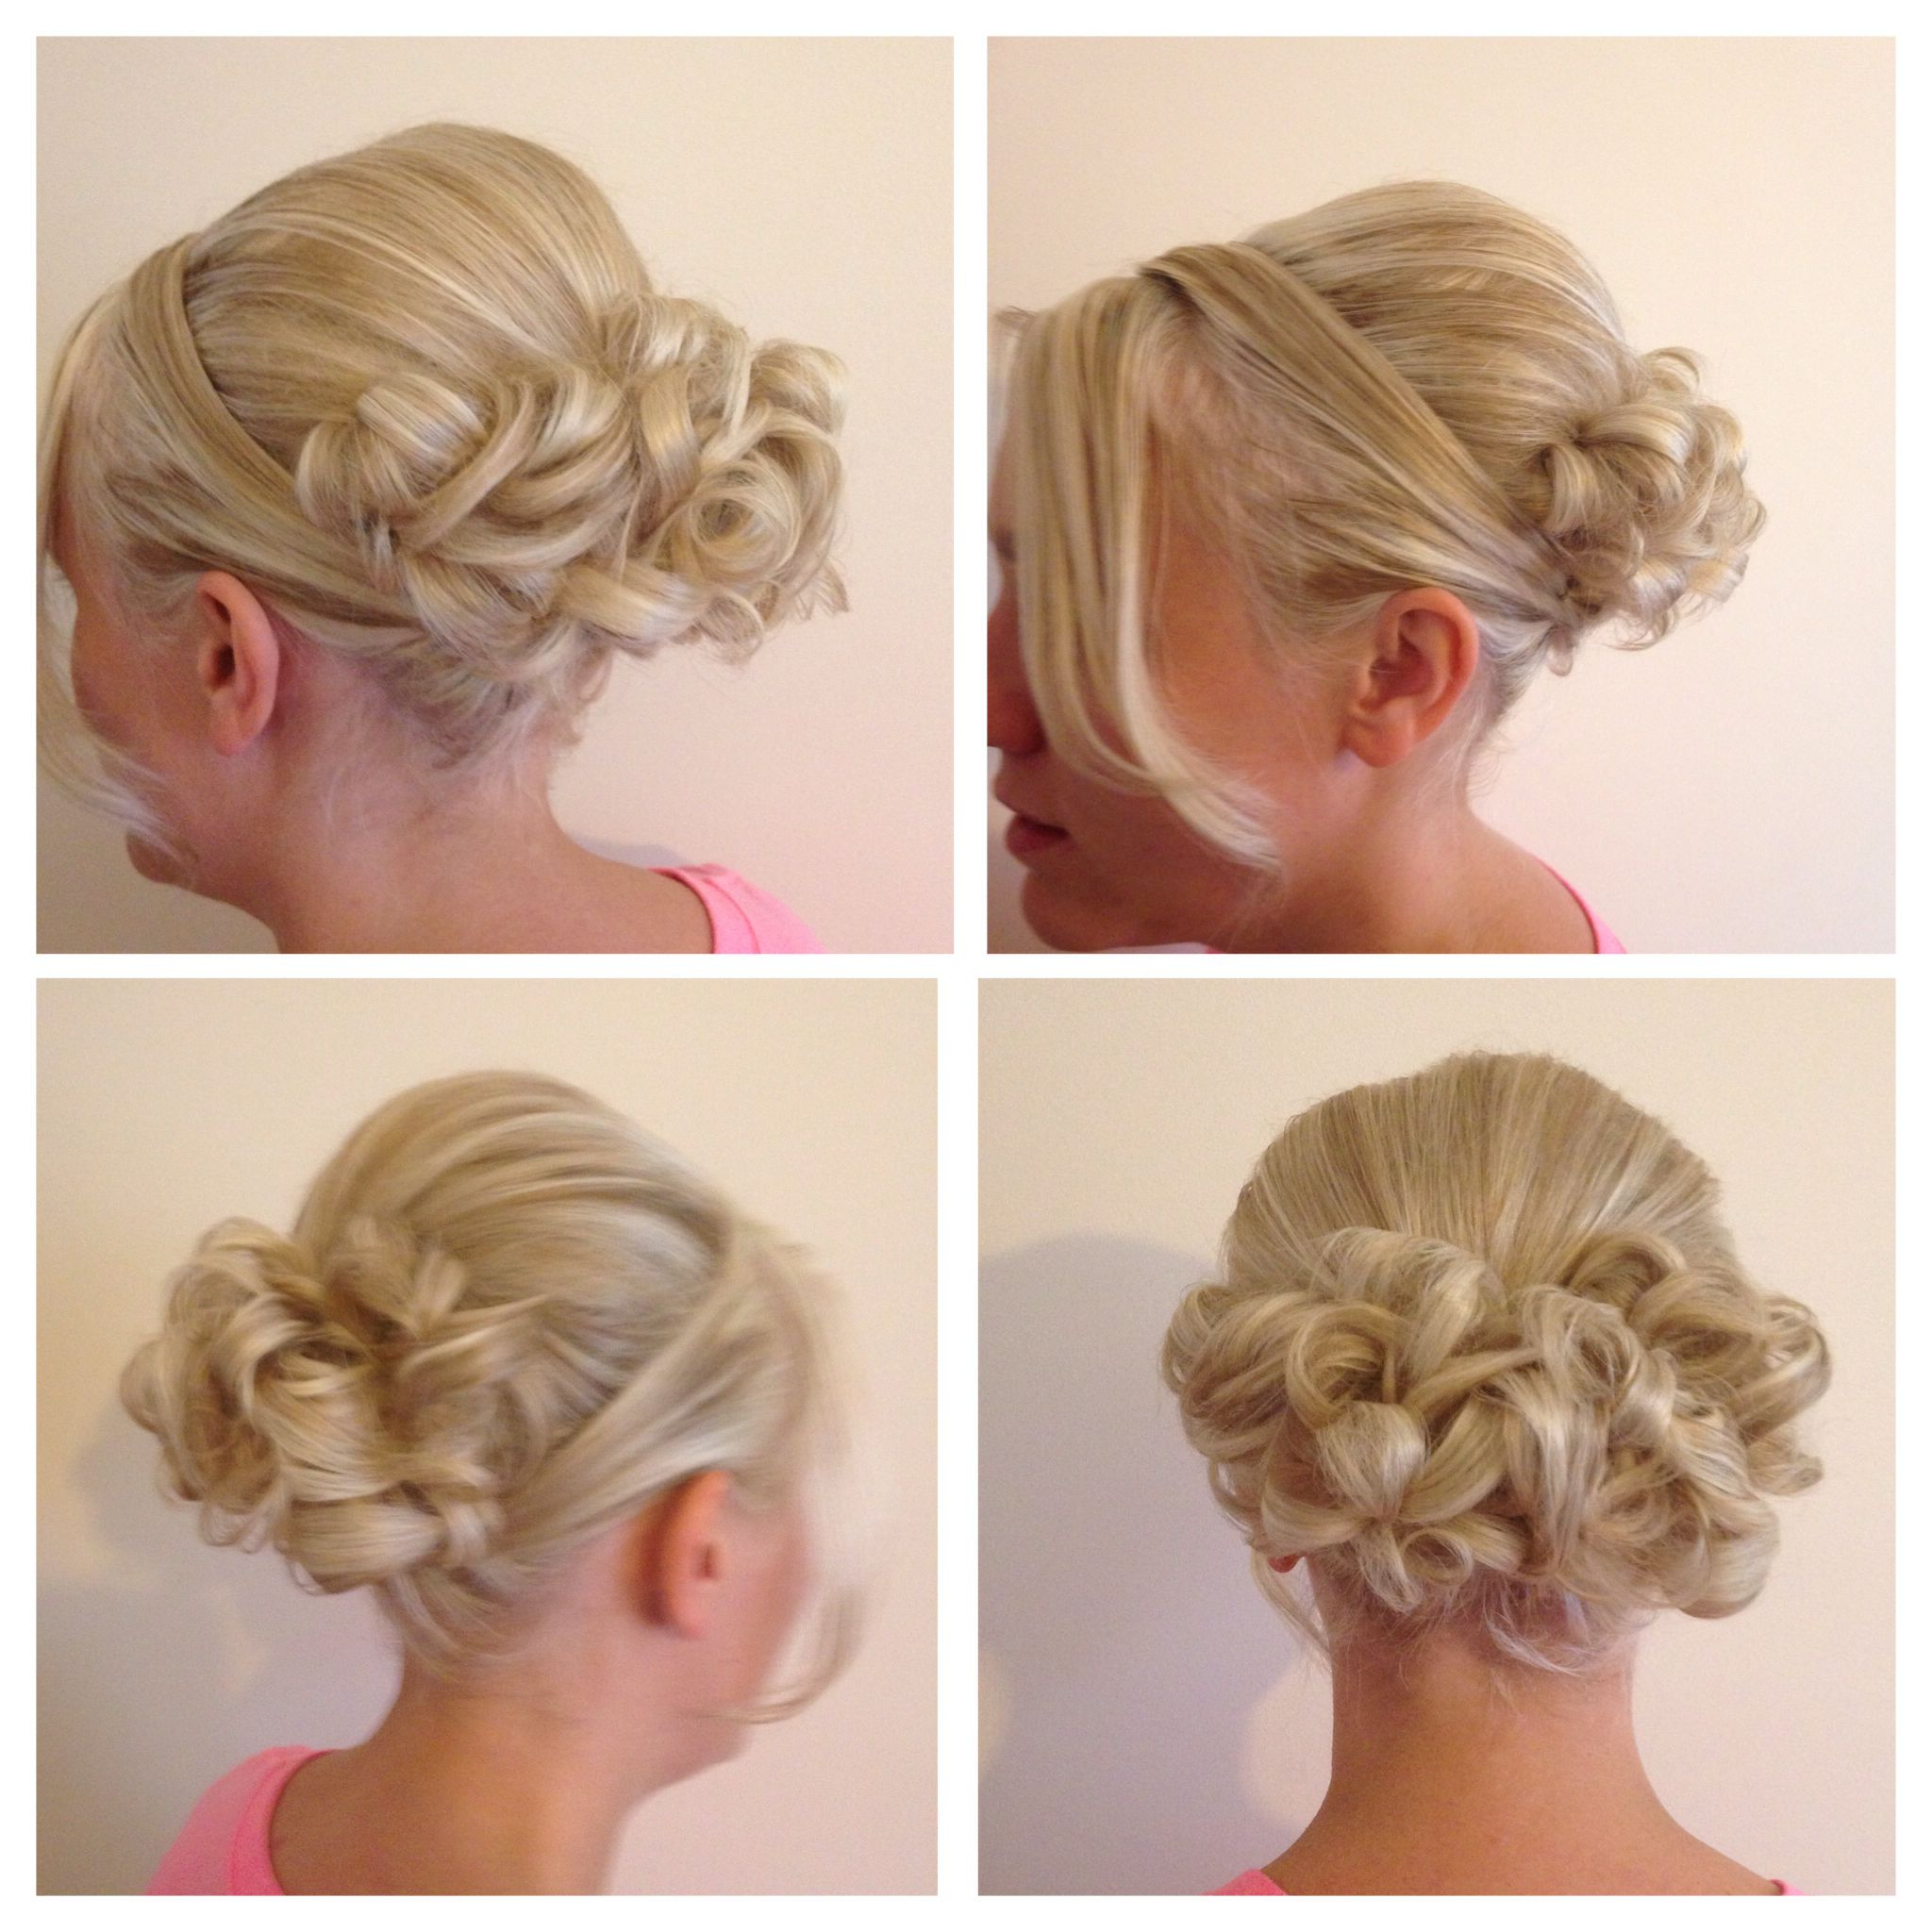 Hair Up Boof With Curls Pinned Up At The Back,sides Swept Round And Intended For Recent Pinned Up Curls Side Swept Hairstyles (View 12 of 20)